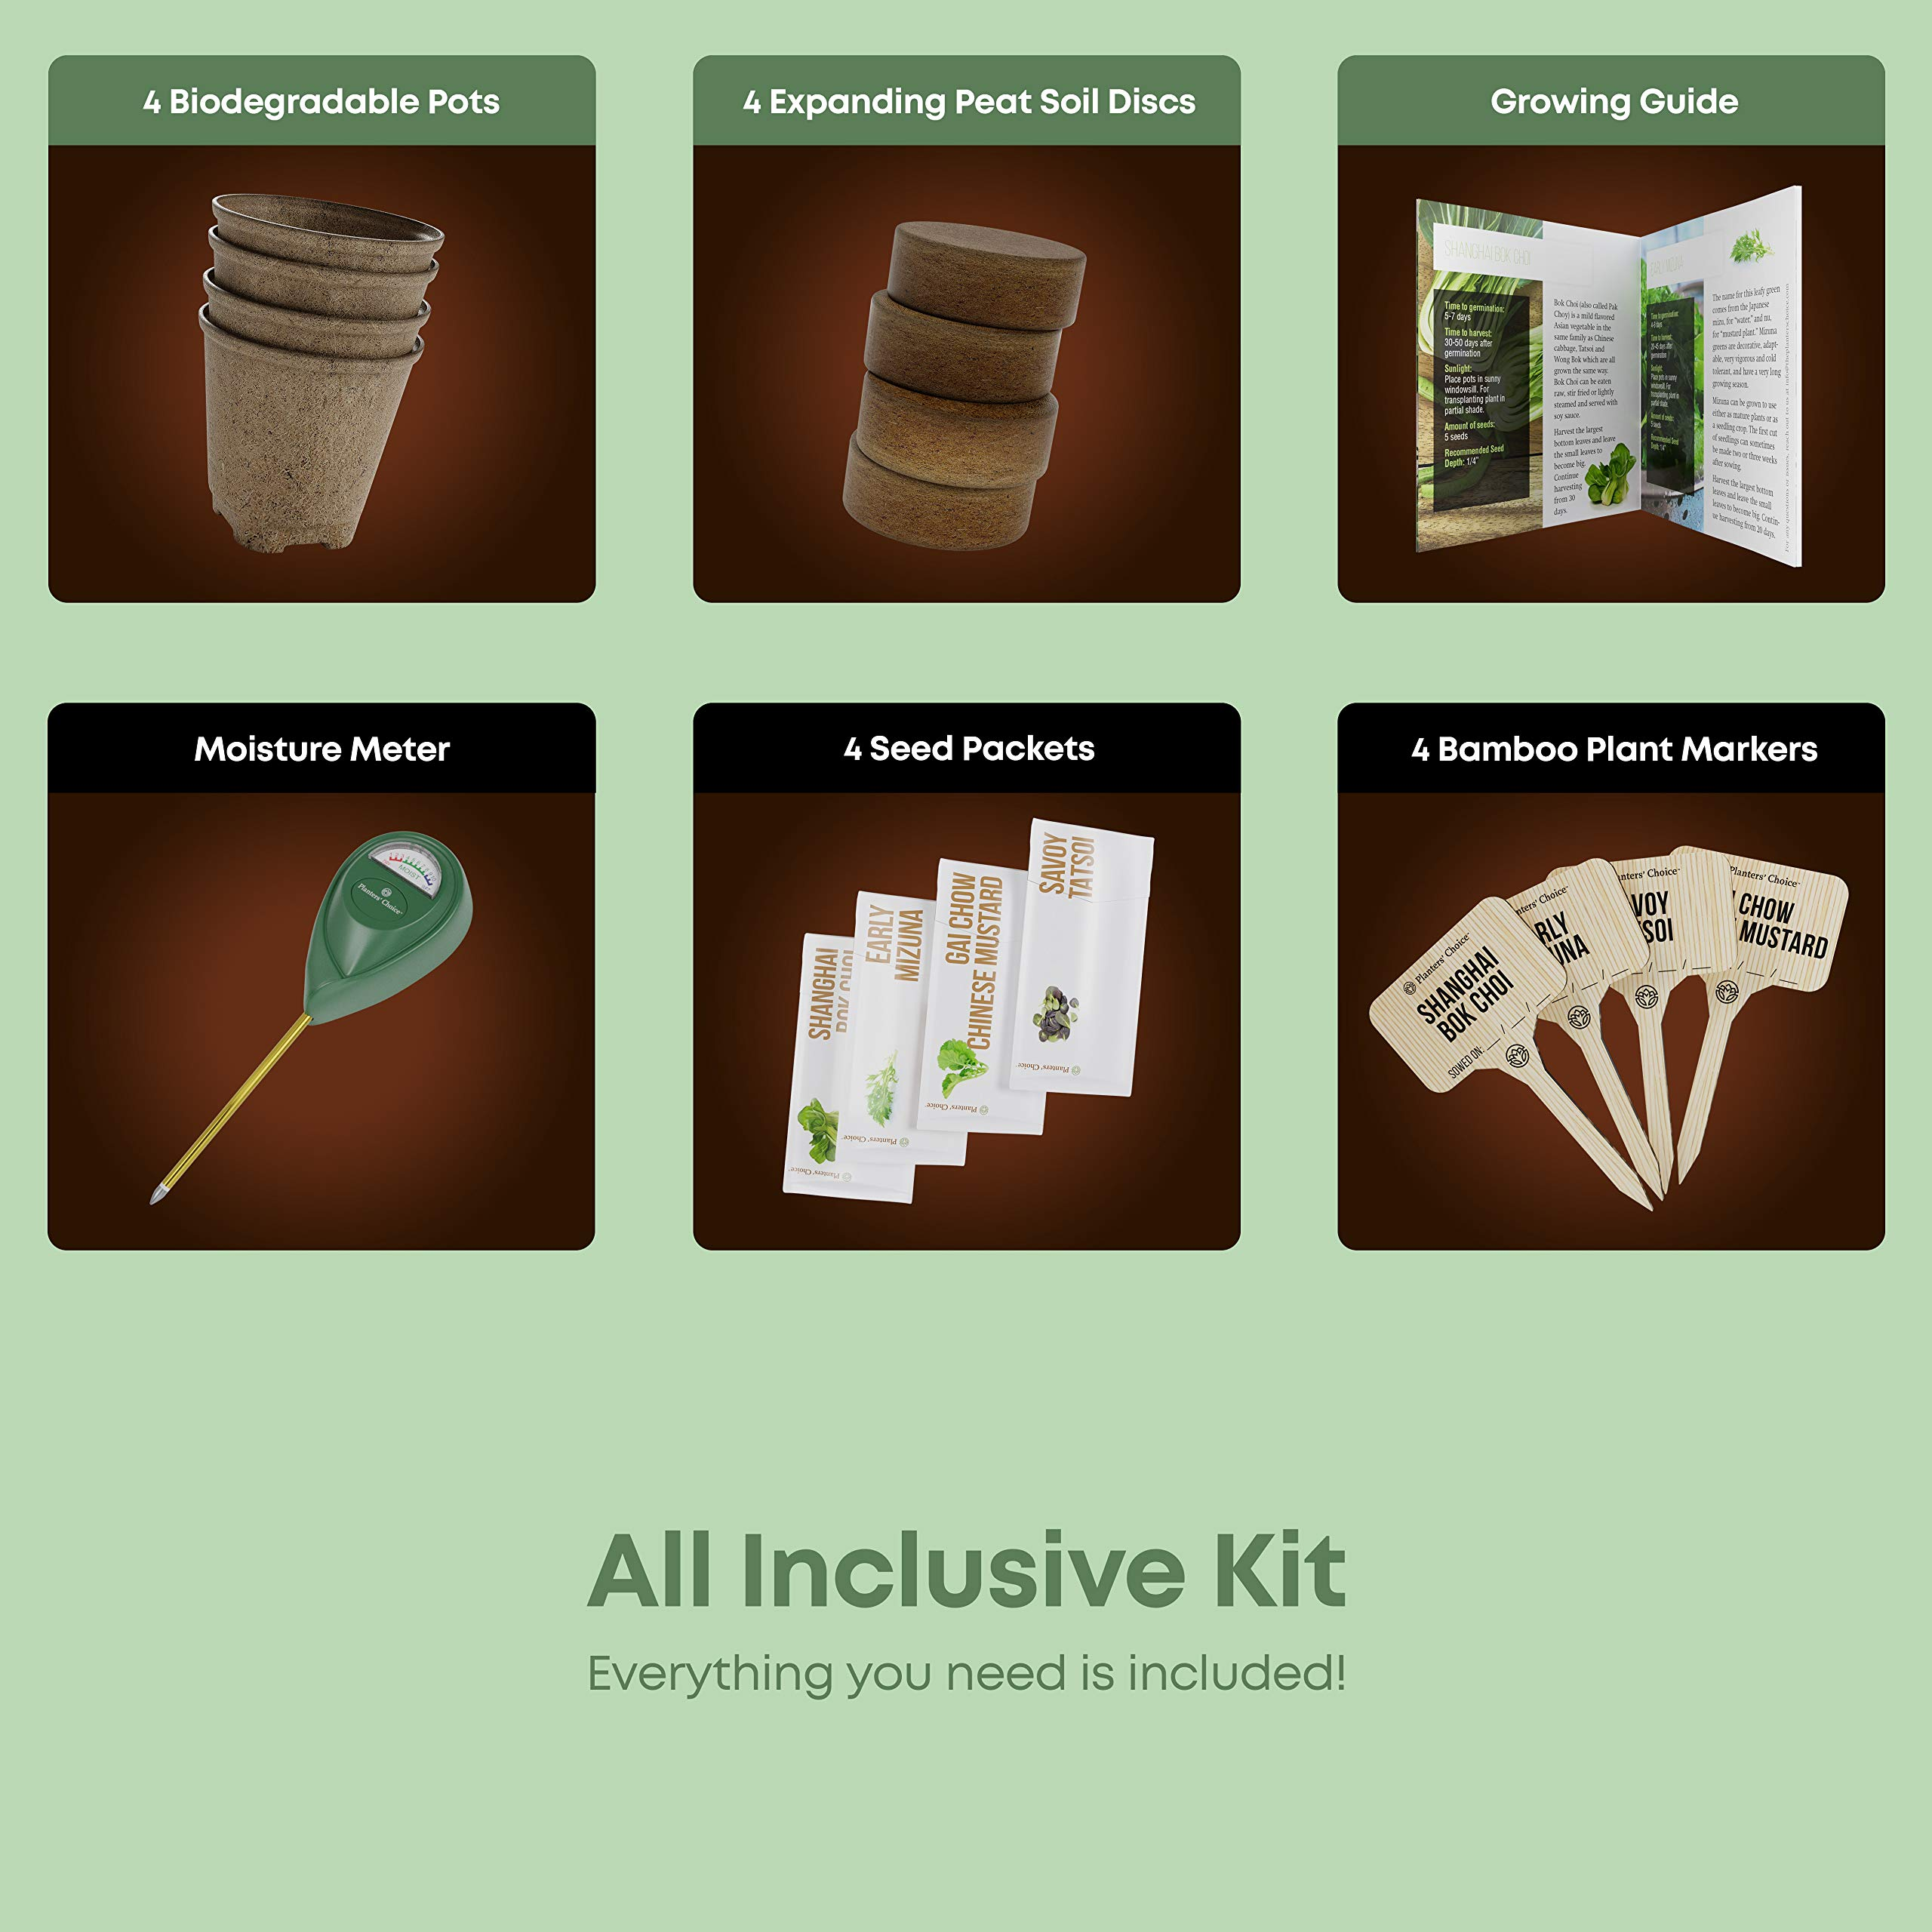 Asian Greens Growing Kit - Everything Included to Easily Grow 4 Traditional Asian Greens from Seed + Moisture Meter: Bok Choi, Mizuna, GAI Chow, Savoy Tatsoi by Planters' Choice (Image #3)